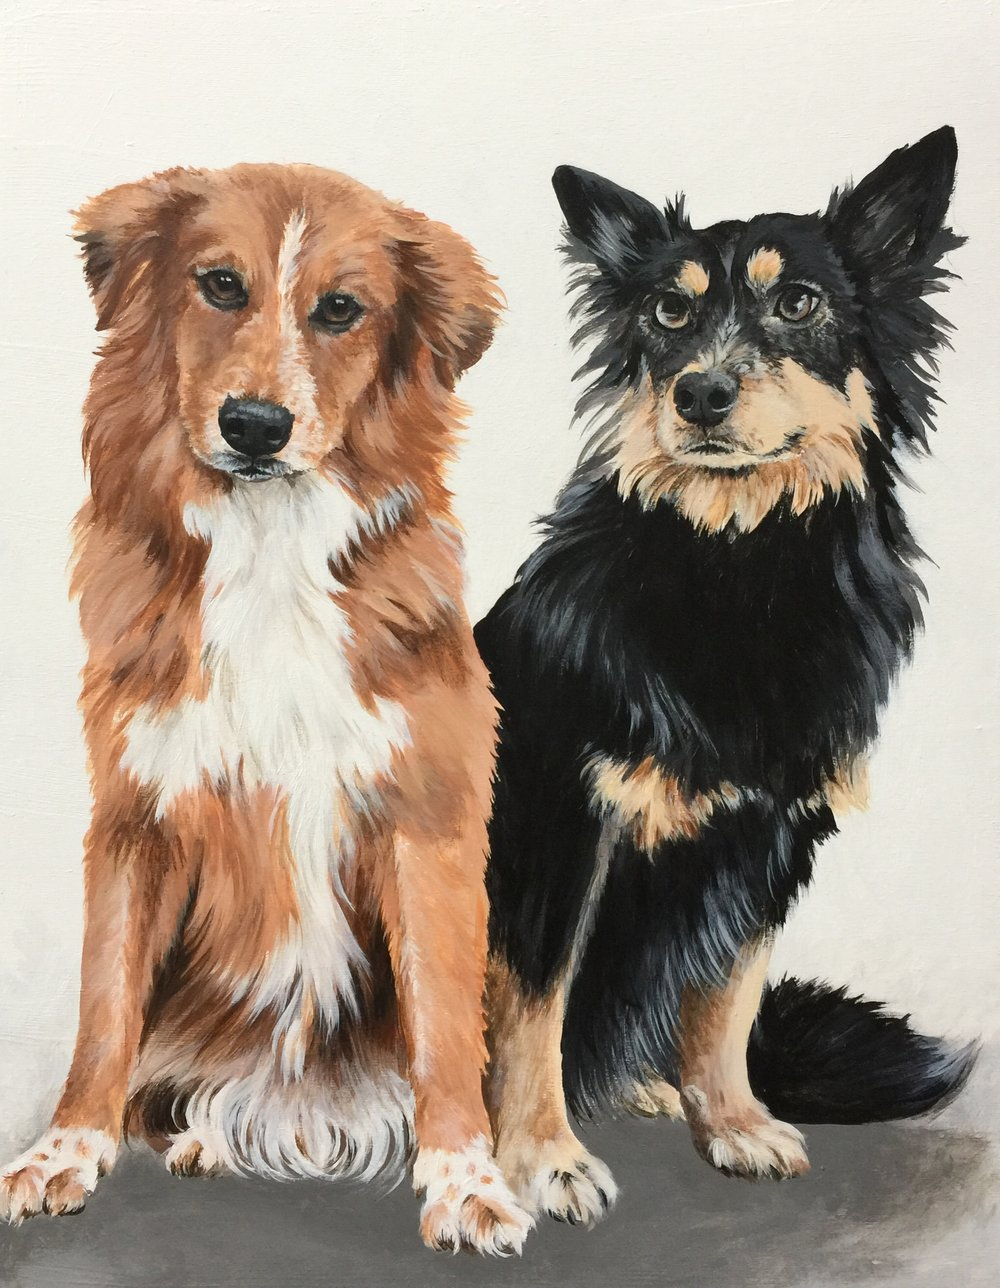 Milley and Cowboy the rescue mutts - commissioned by Janet